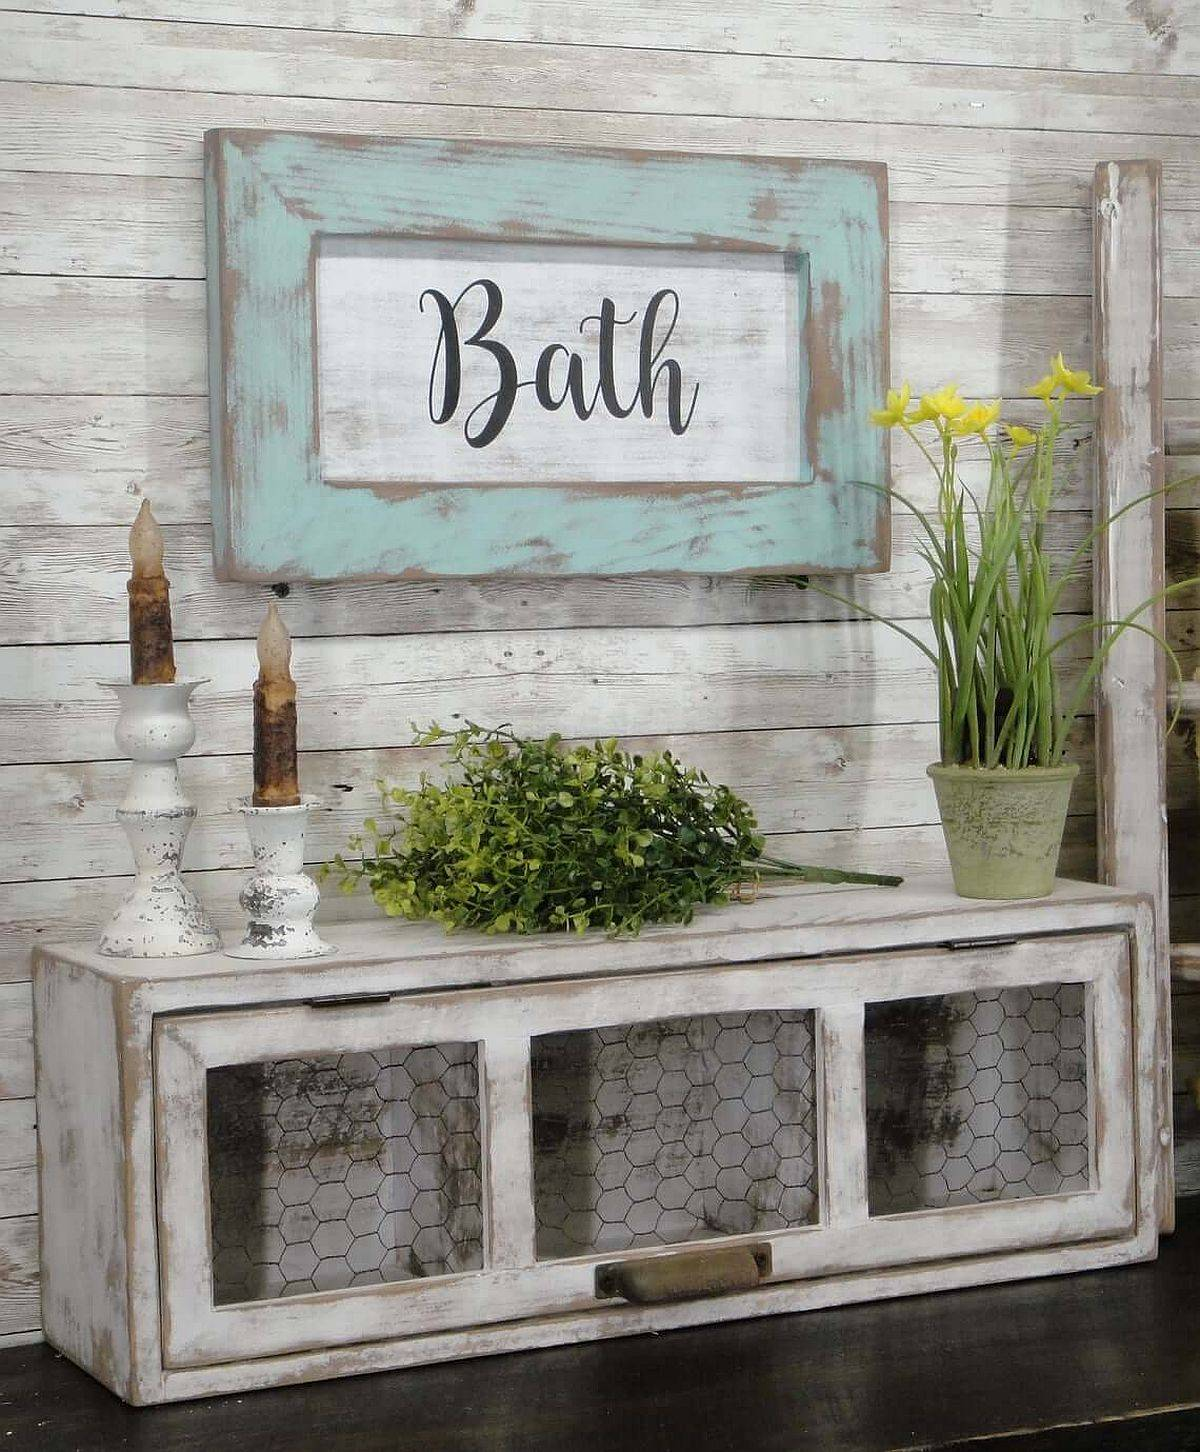 Repurpused-and-weathered-bathroom-decor-is-just-perfect-for-the-farmhouse-theme-62400